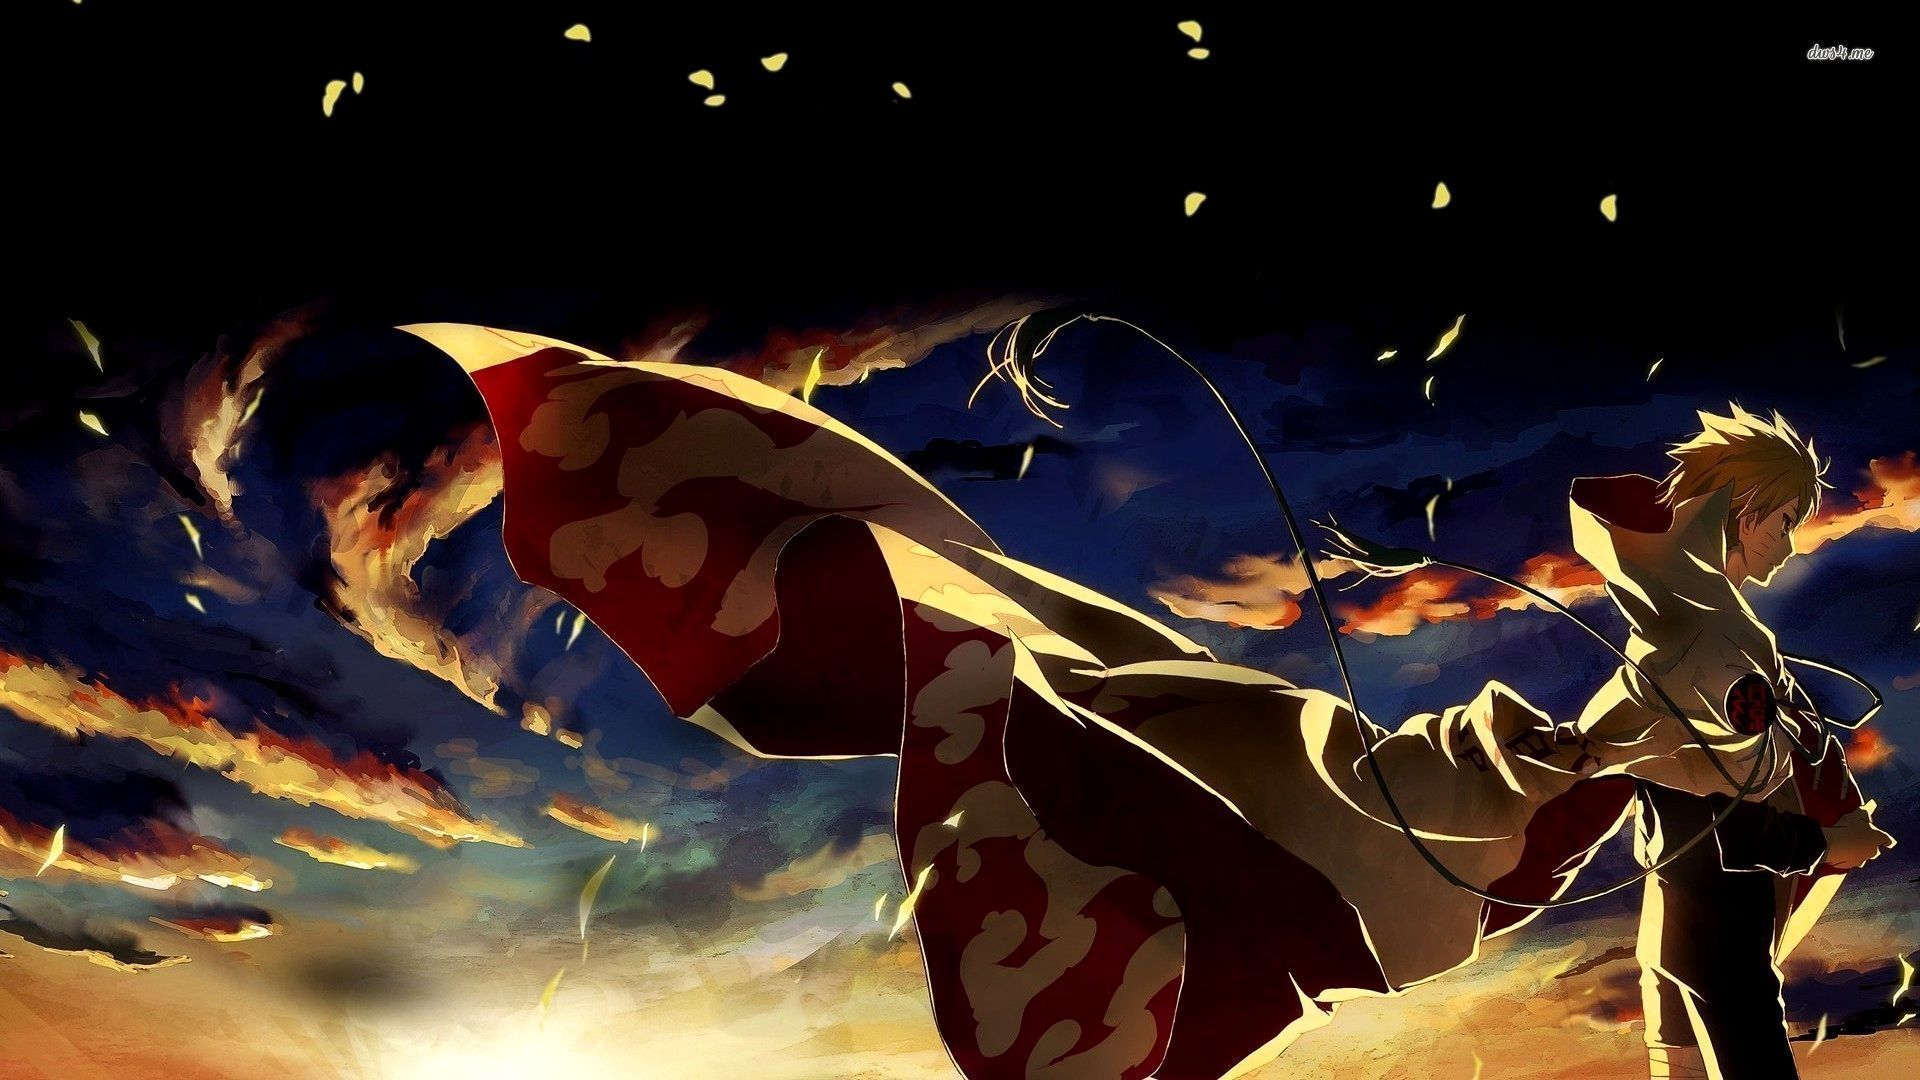 Wallpaper 4k Para Pc Naruto Trick 4 Ios Wallpaper Wallpapers Page Ios N 4k In 2020 Hd Anime Wallpapers Naruto Wallpaper Anime Wallpaper Download